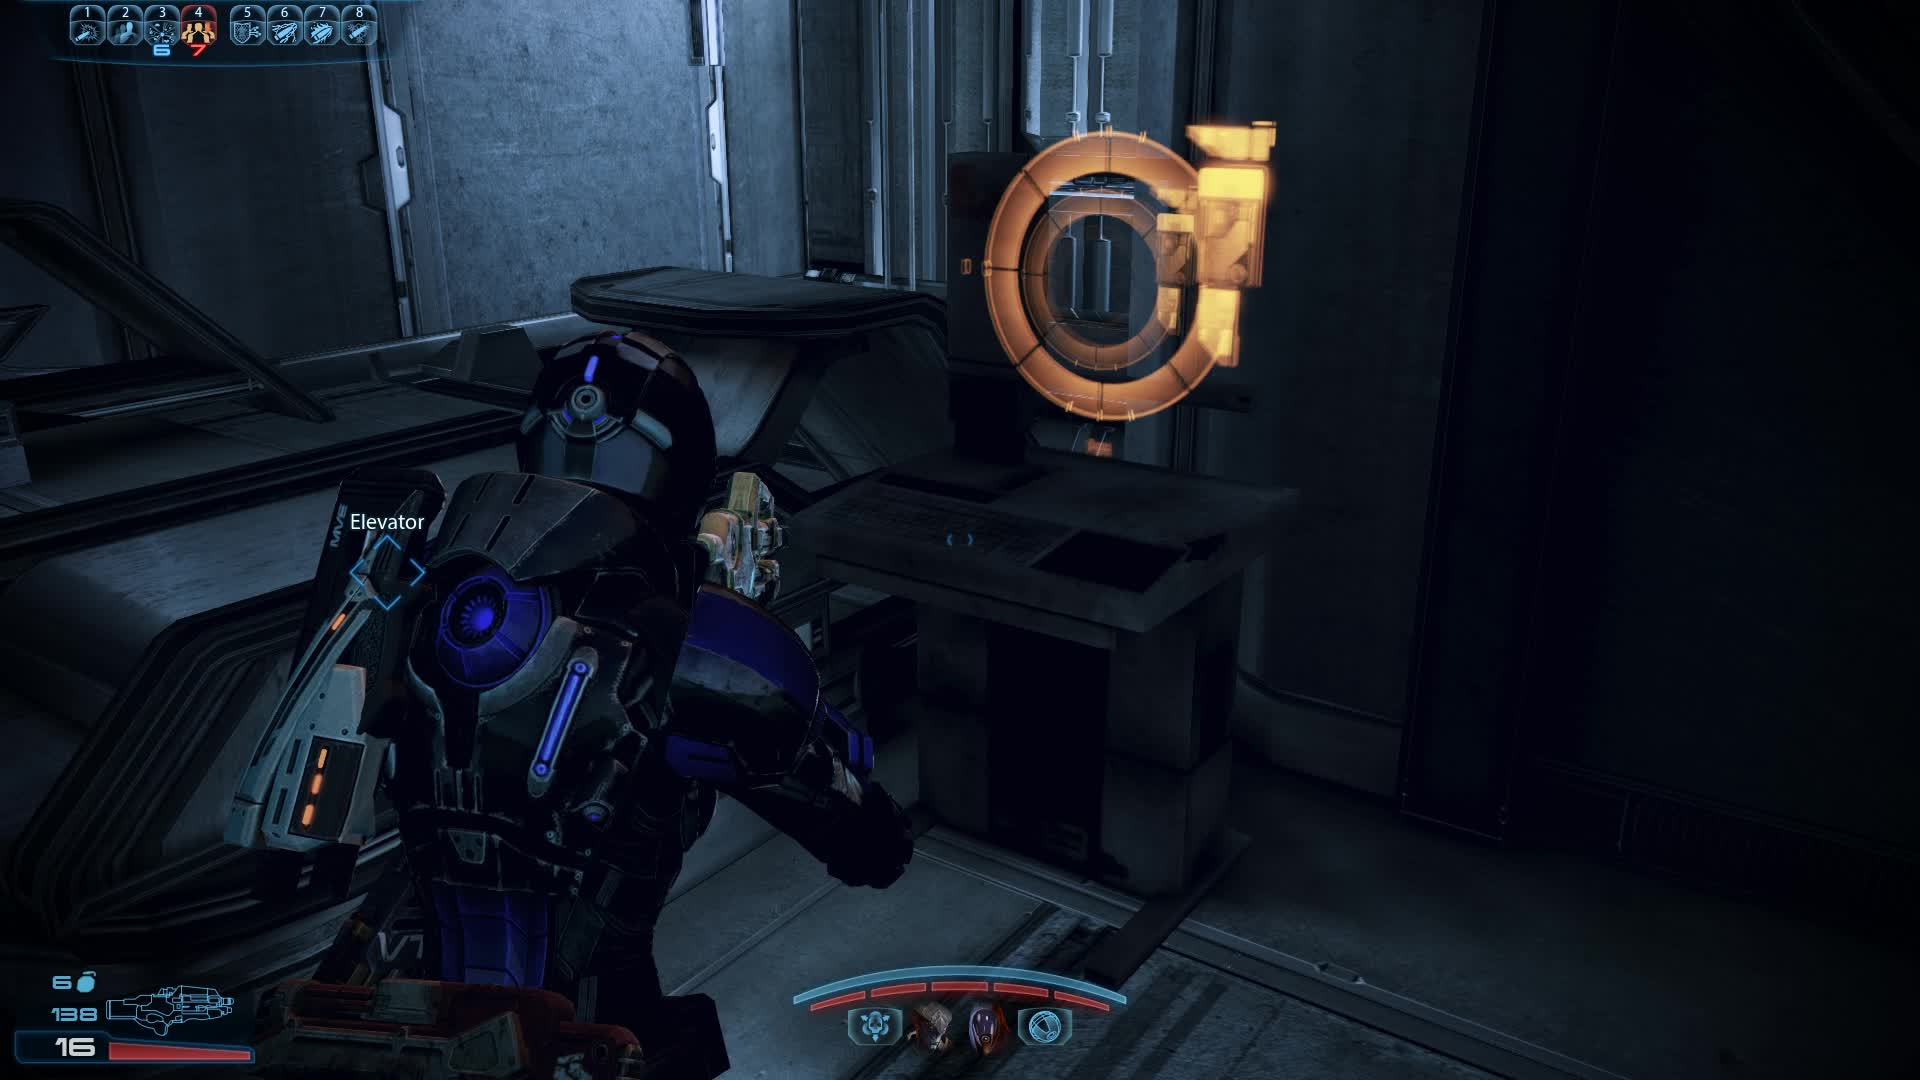 mass effect 3, Oh hello there GIFs